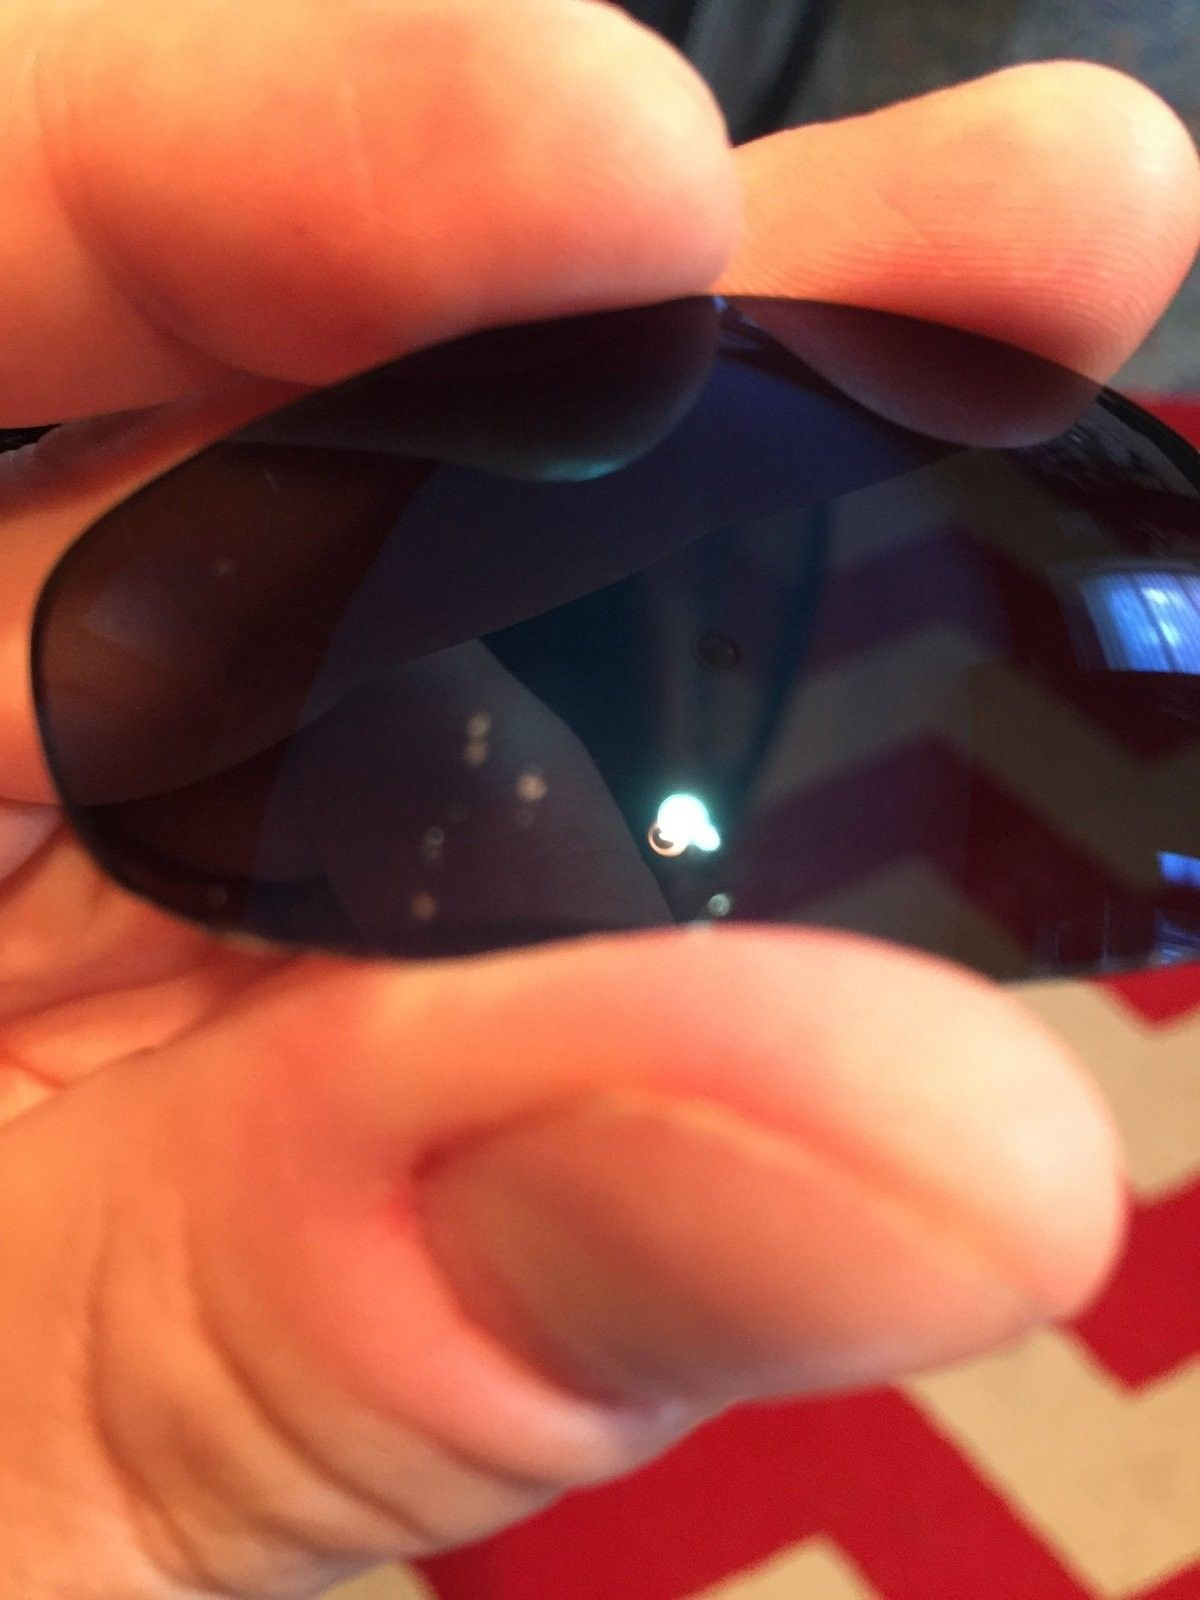 Four Lot and Polarized Radarlock lens for display stands - image.jpeg